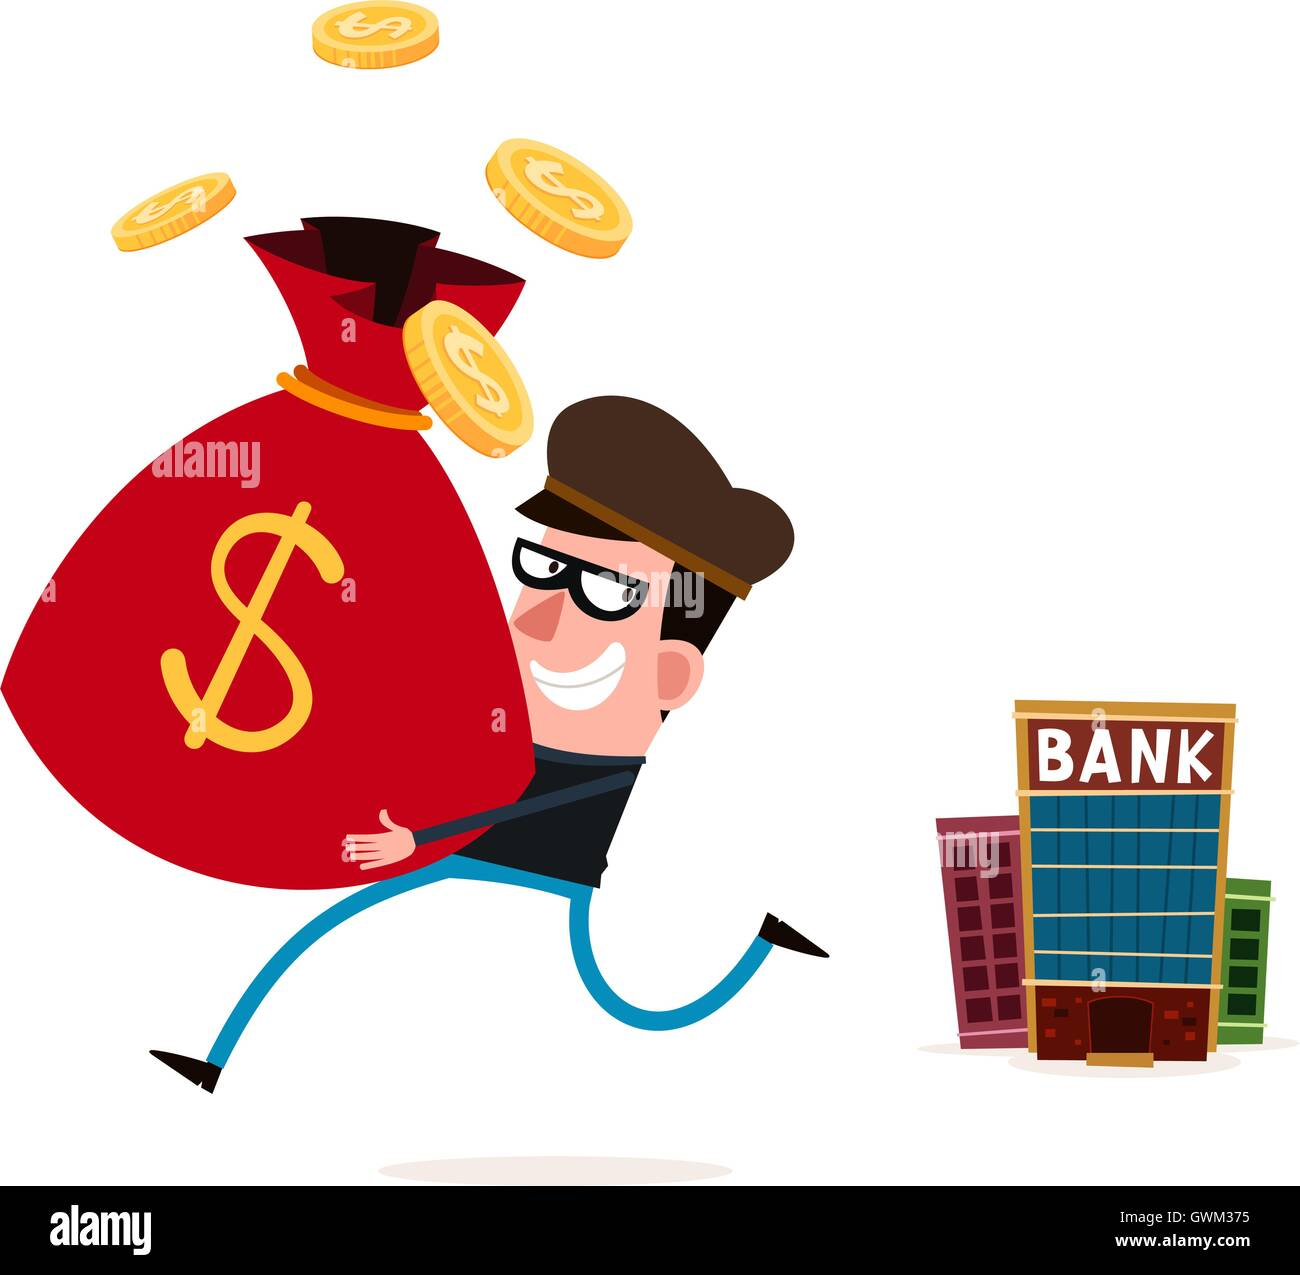 tricky thief stealing money from bank - Stock Image